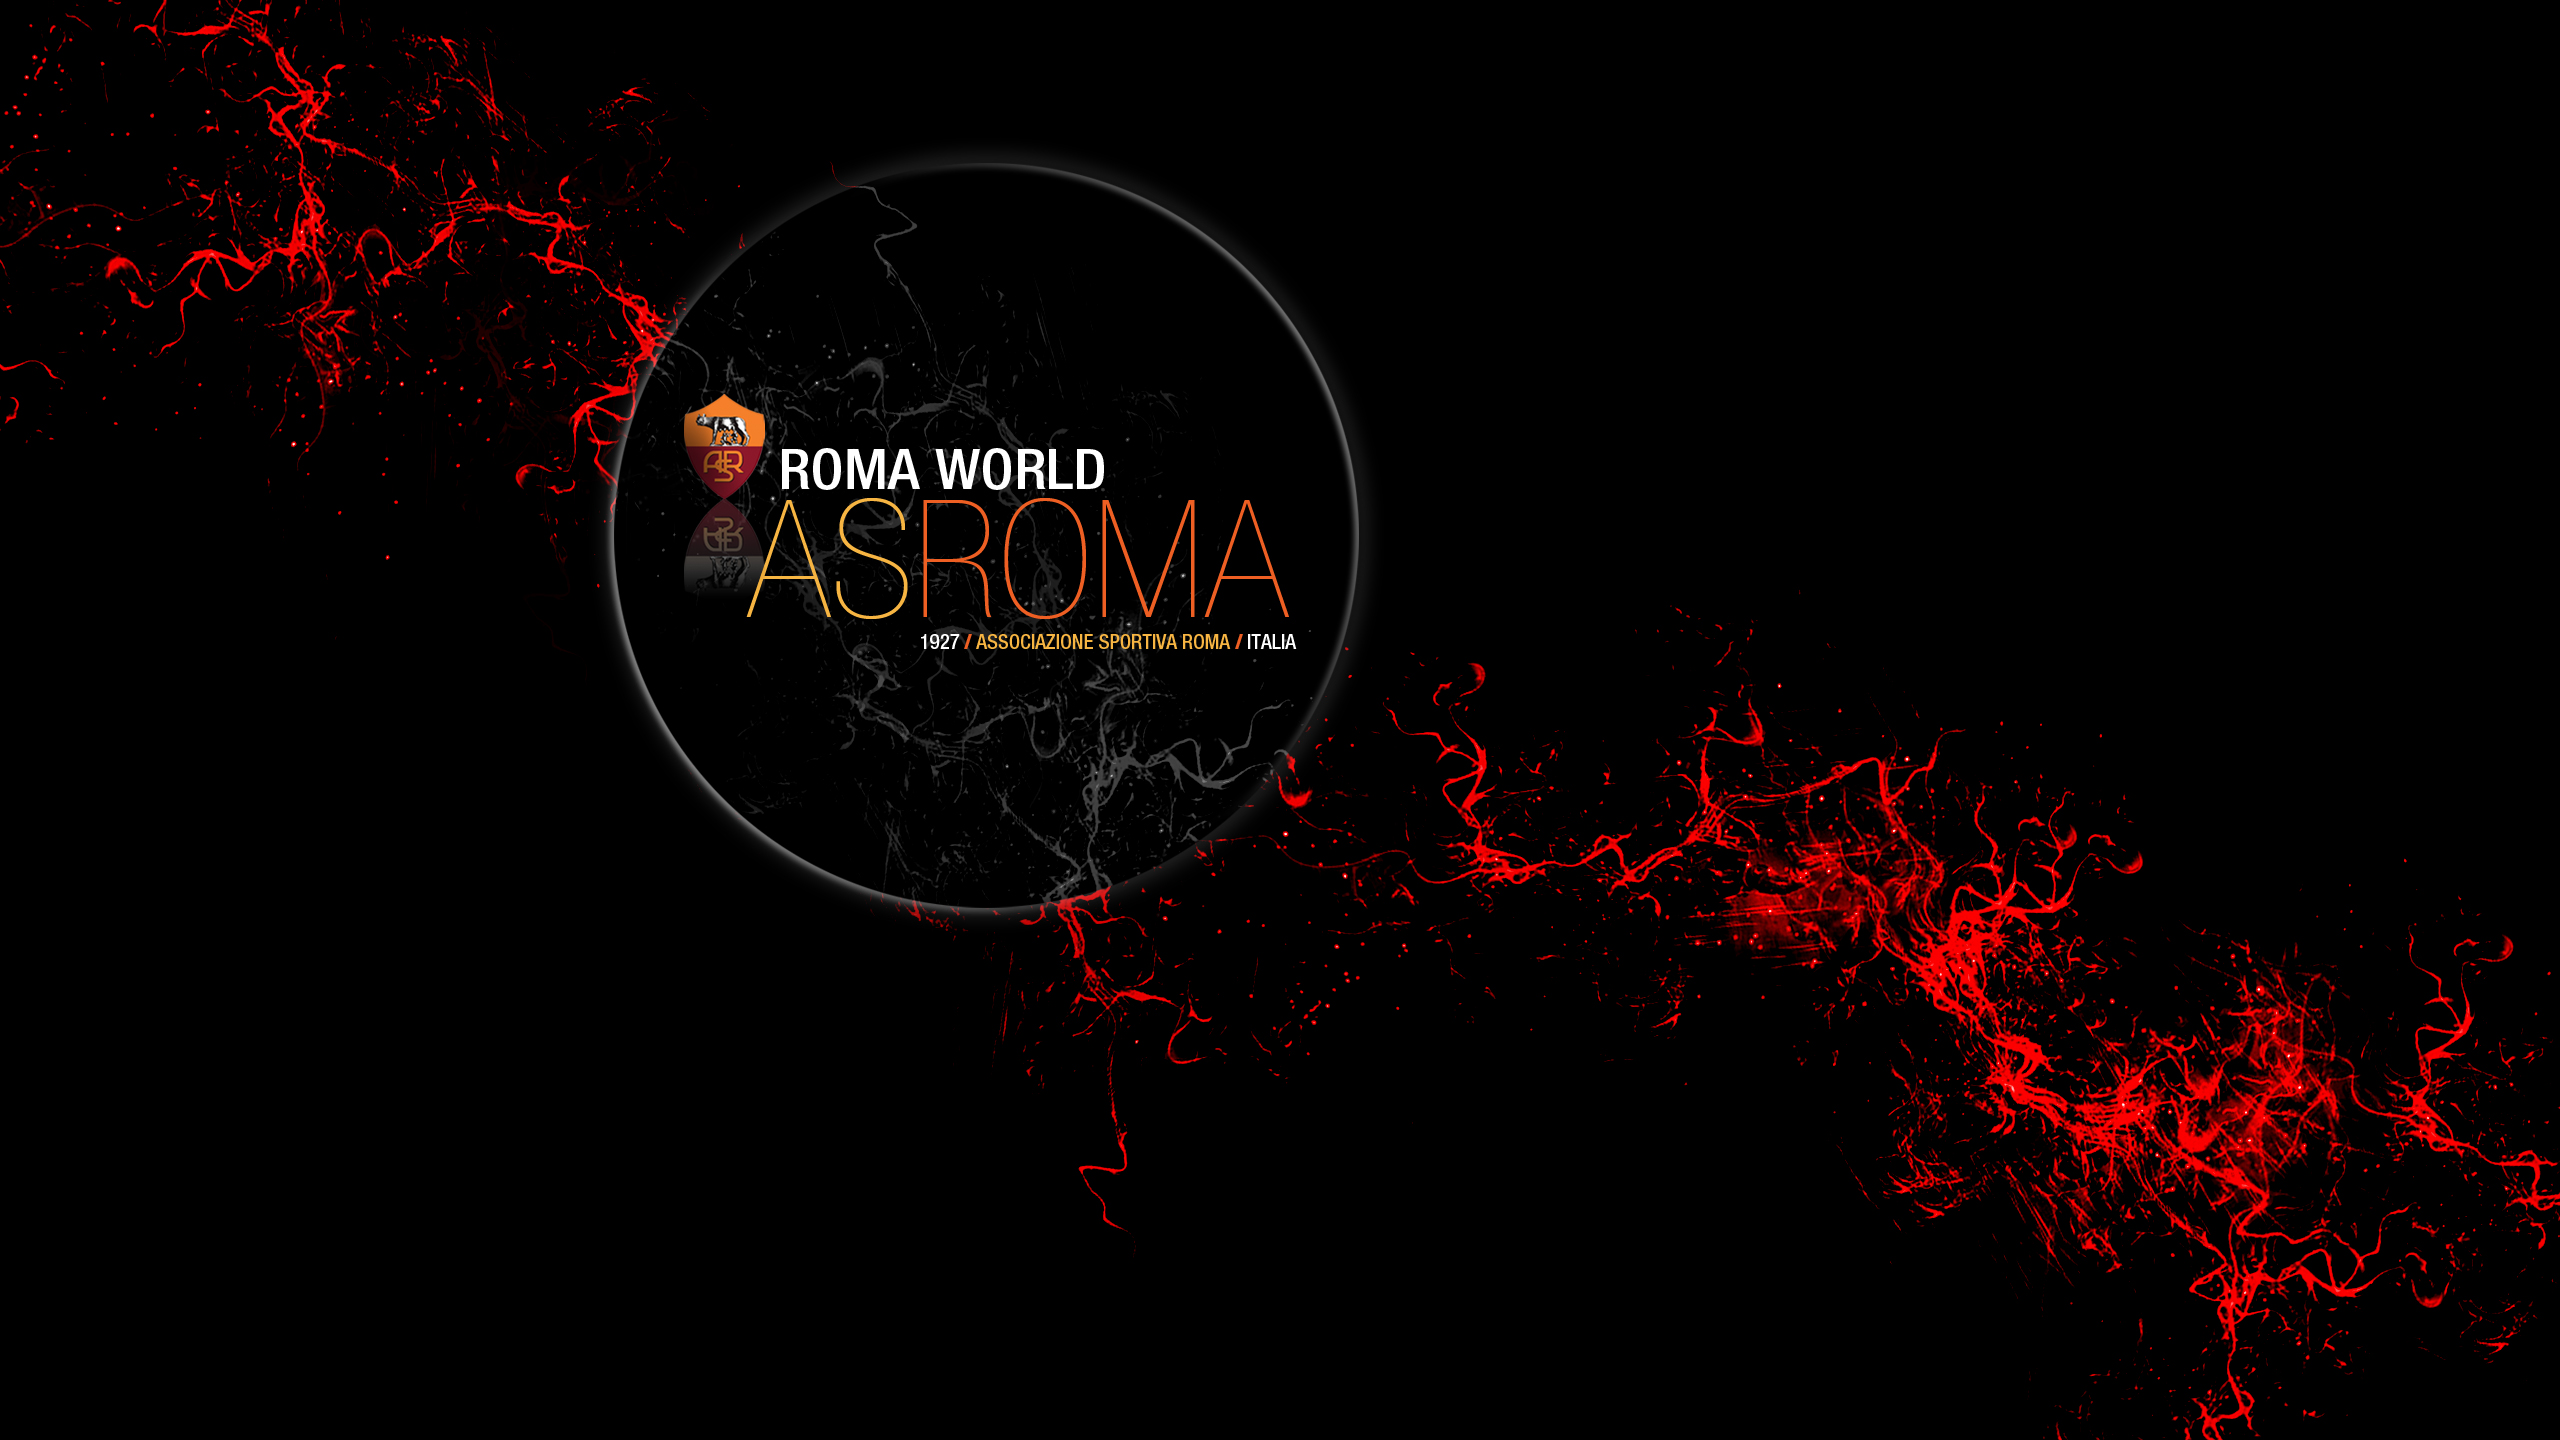 roma world' wallpapers – part 2 – forza27